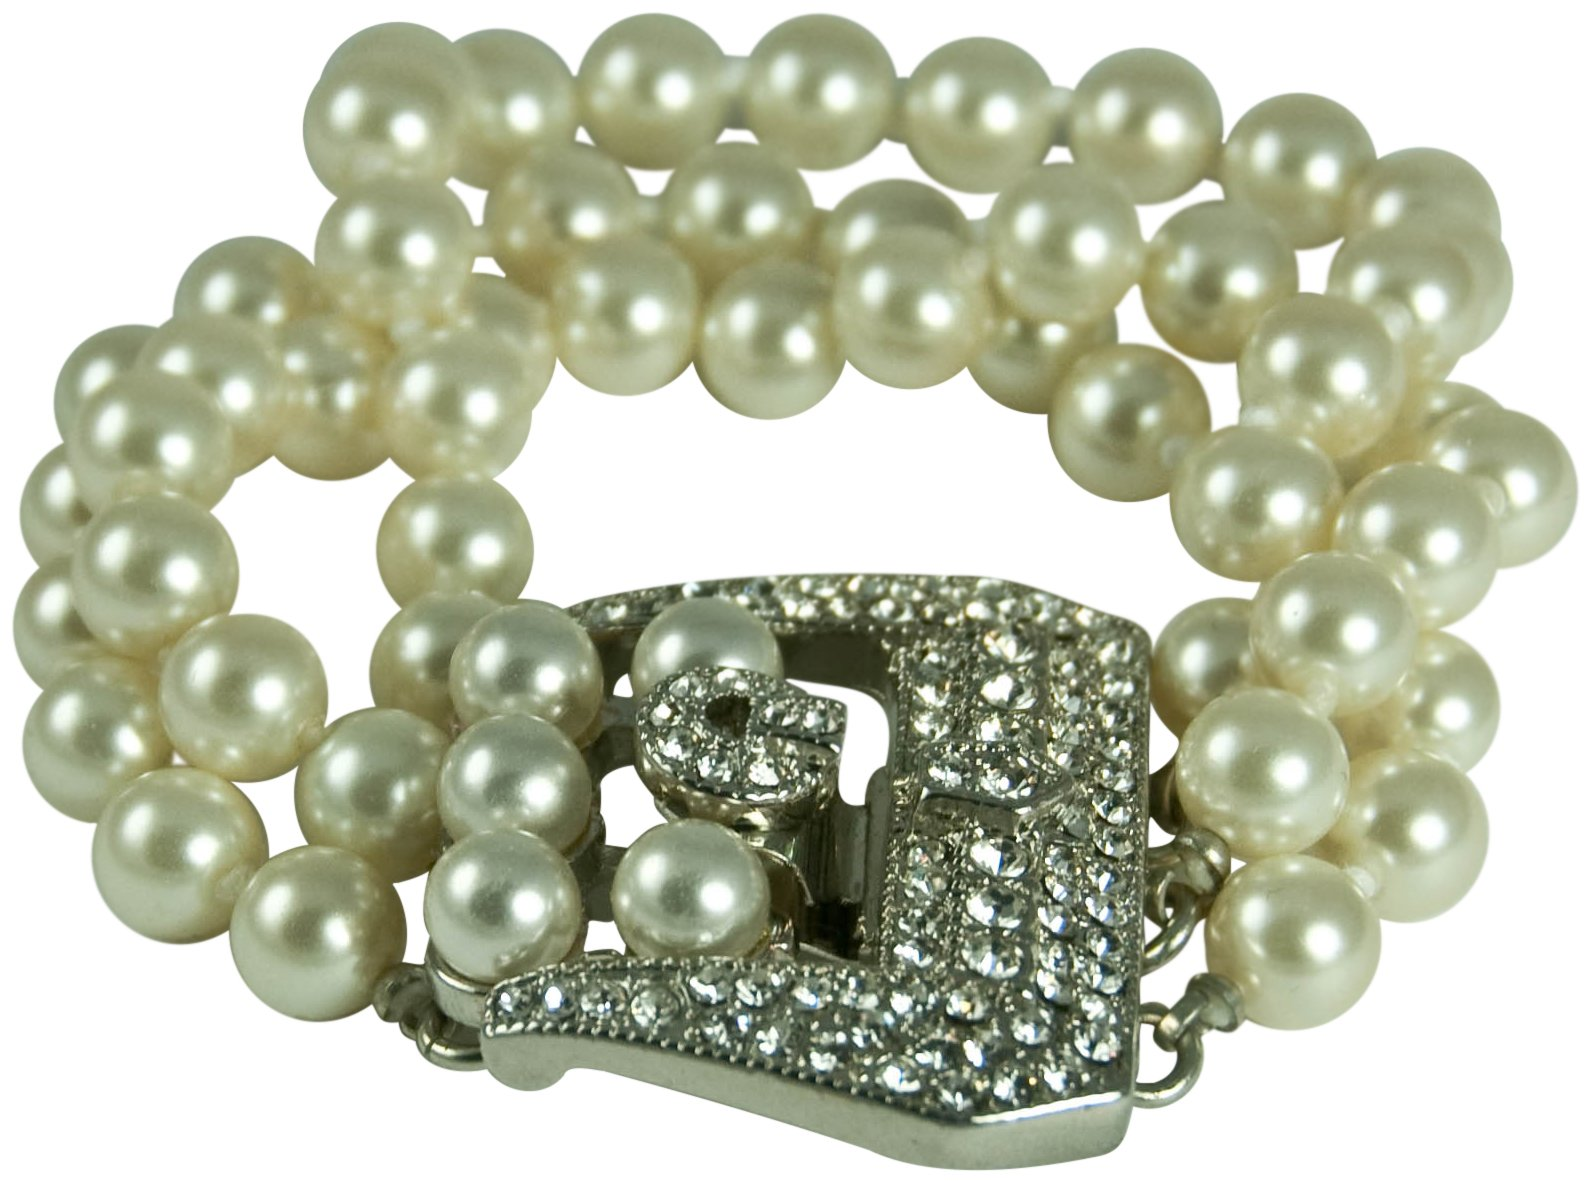 KENNETH JAY LANE-3 STRAND GLASS PEARL BRACELET WITH PAVE CRYSTAL BUCKLE CLOSURE by Kenneth Jay Lane